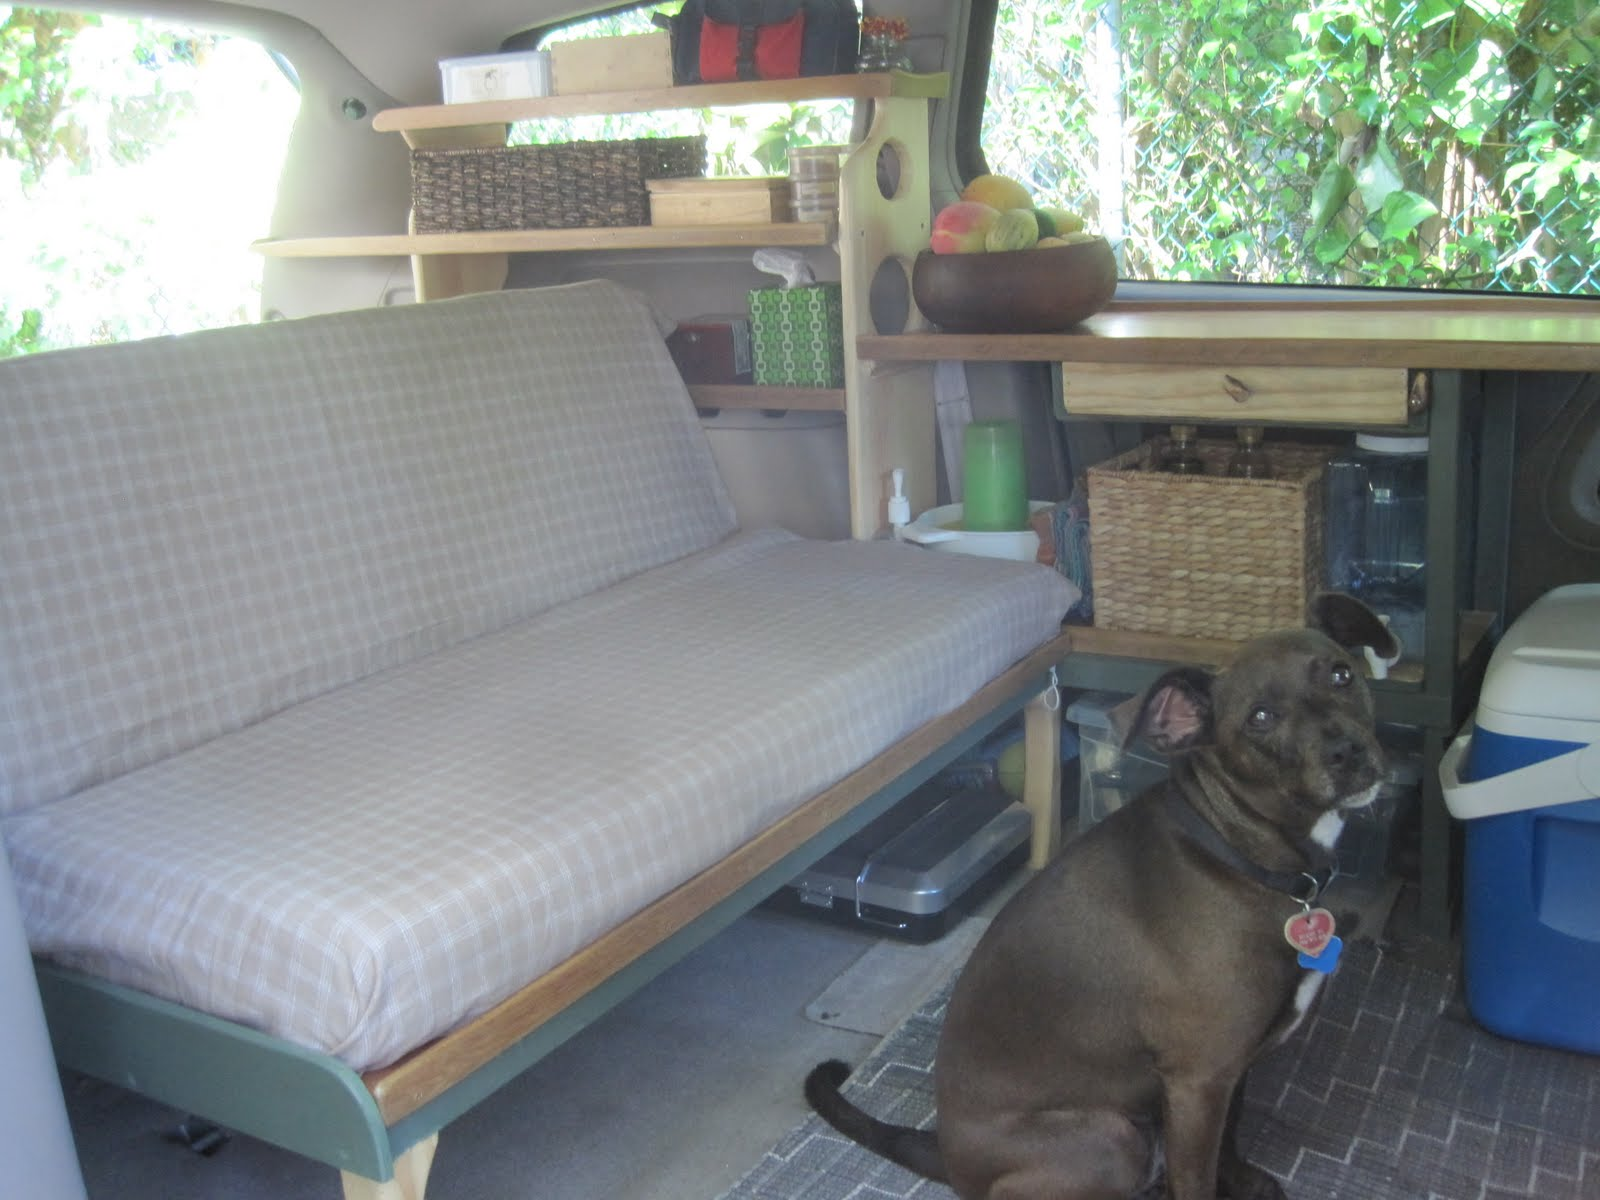 At his point a small brown dog discovered our mini-camper and took up ...